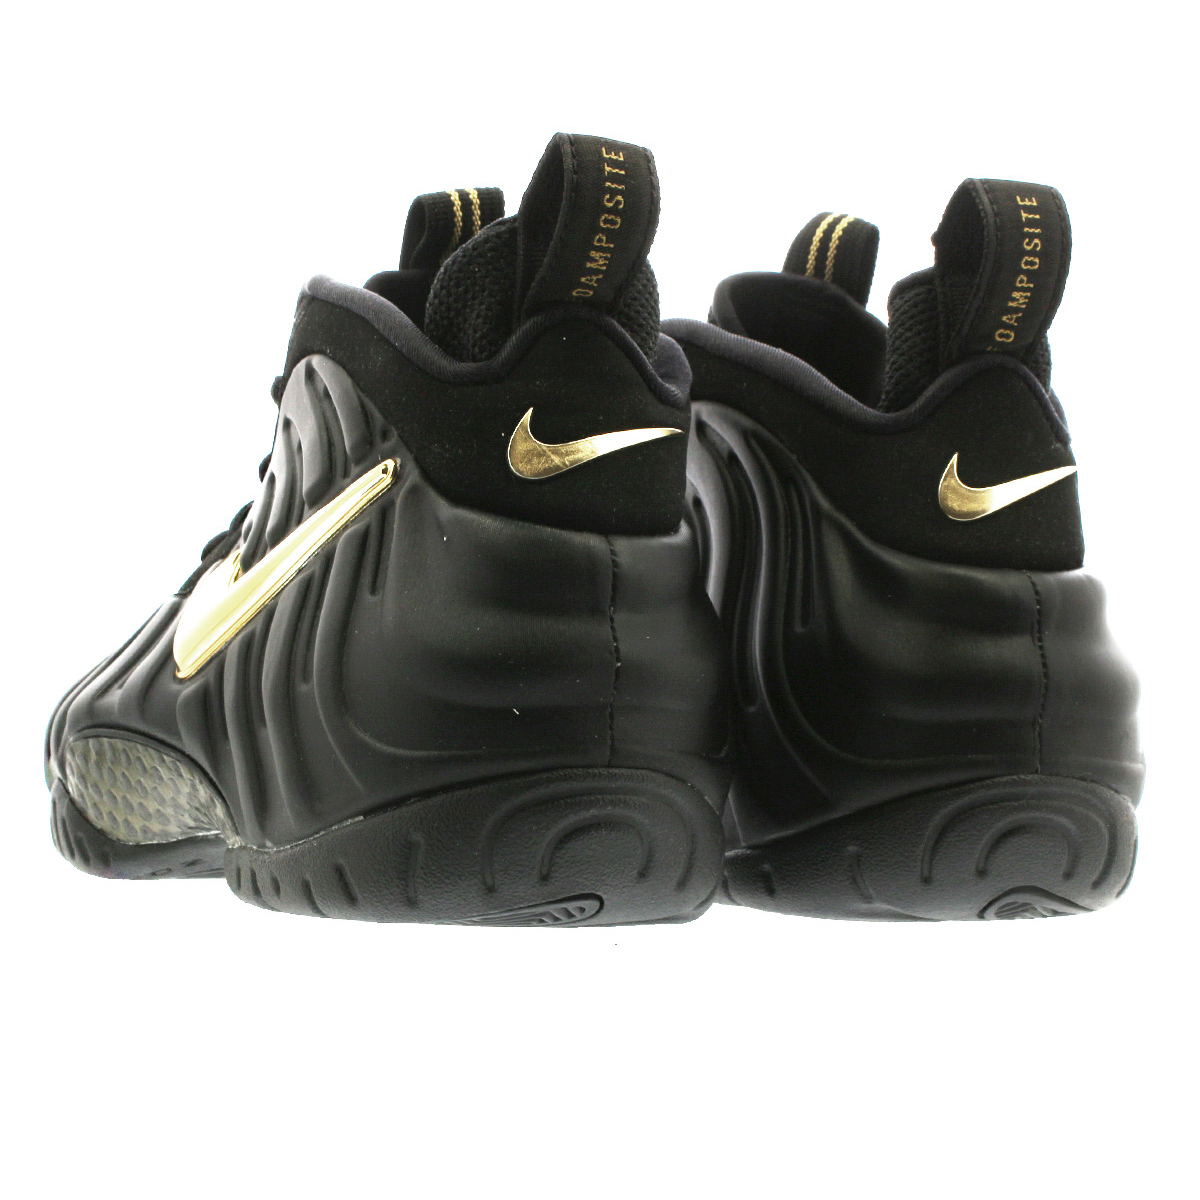 new product 0c924 fee9a NIKE AIR FOAMPOSITE PRO ナイキエアフォームポジットプロ BLACK/METALLIC GOLD 624,041-009